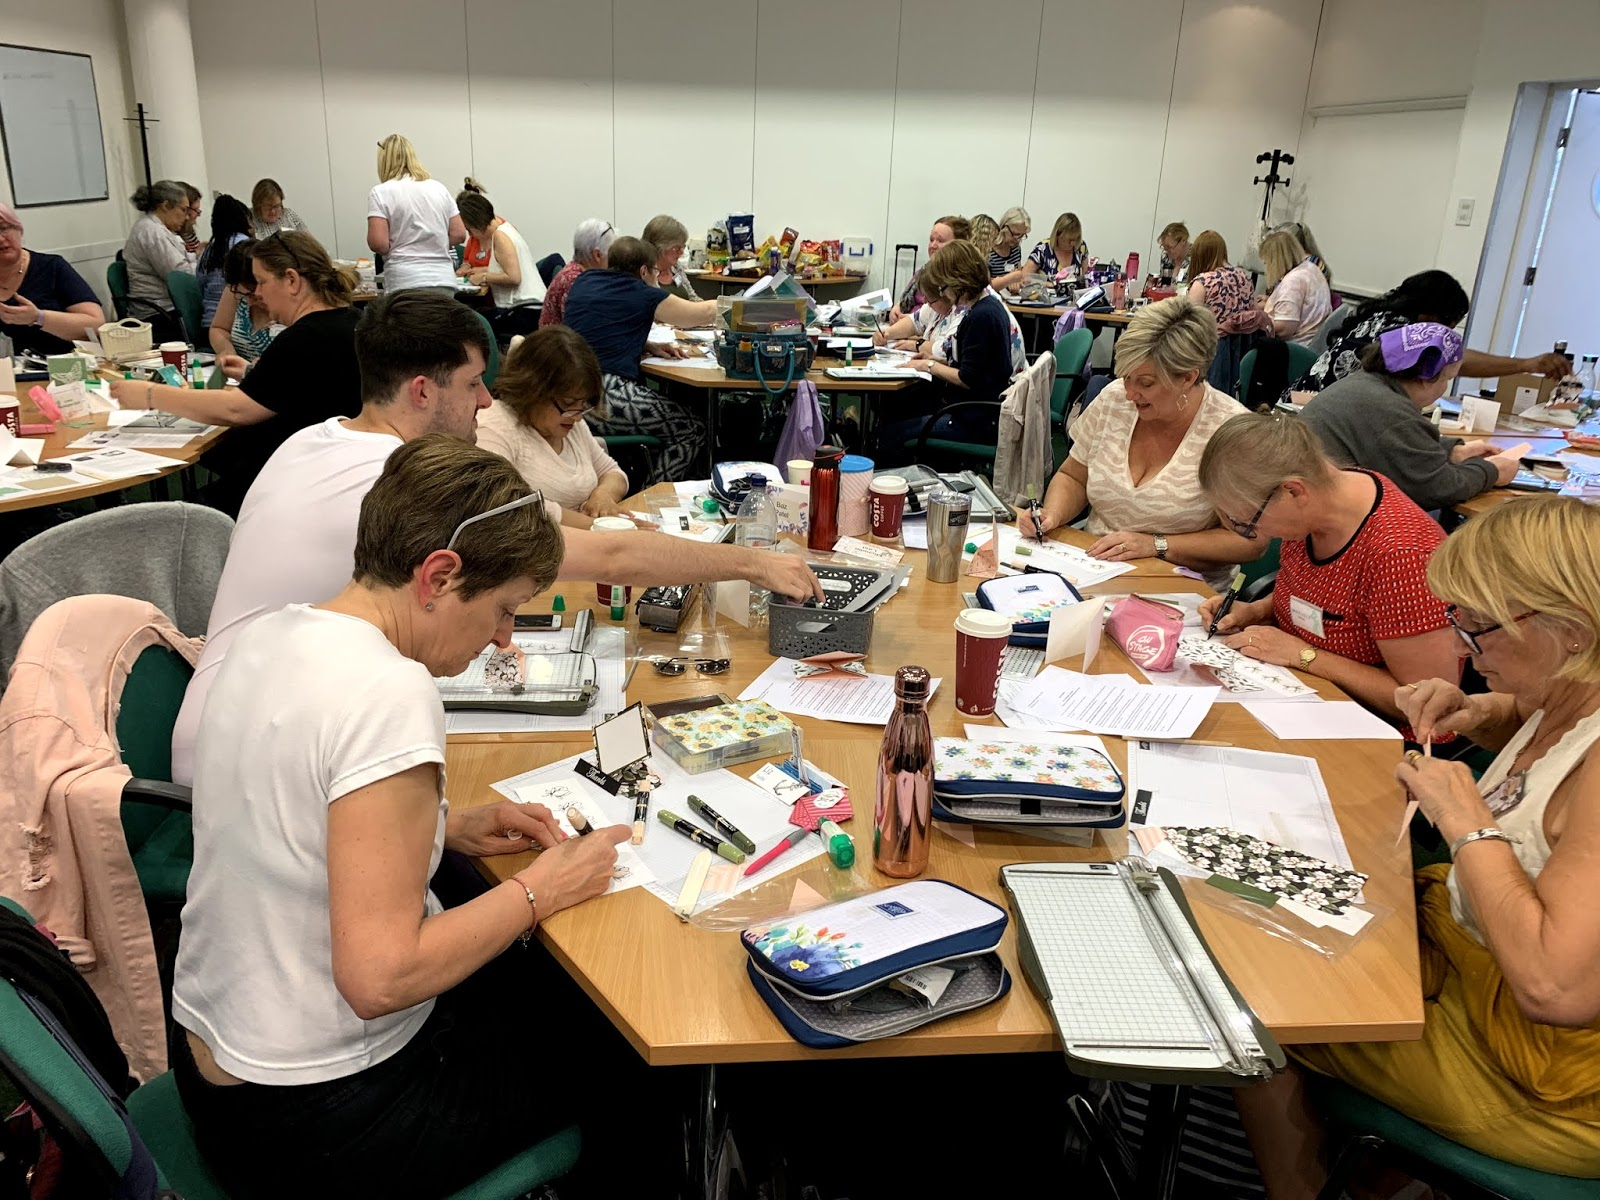 Stampin Up team event, this photo is of a big group of demonstrators all crafting together